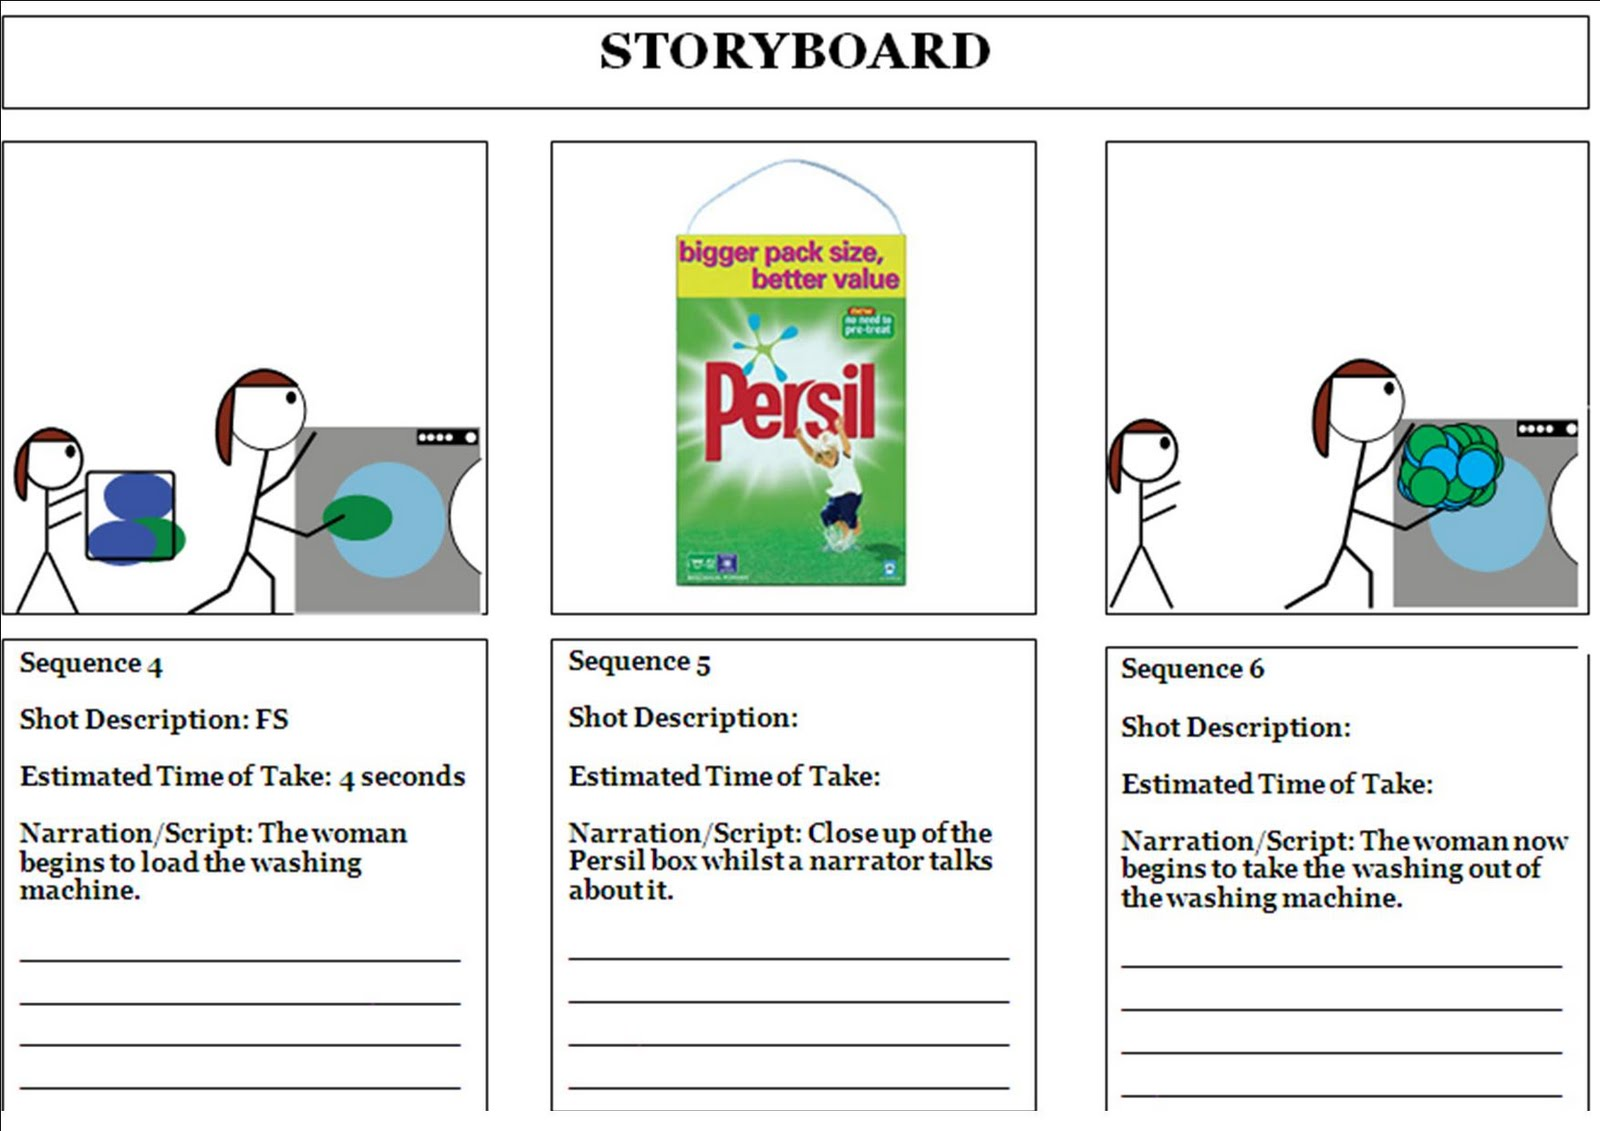 Storyboard (Advert 1)